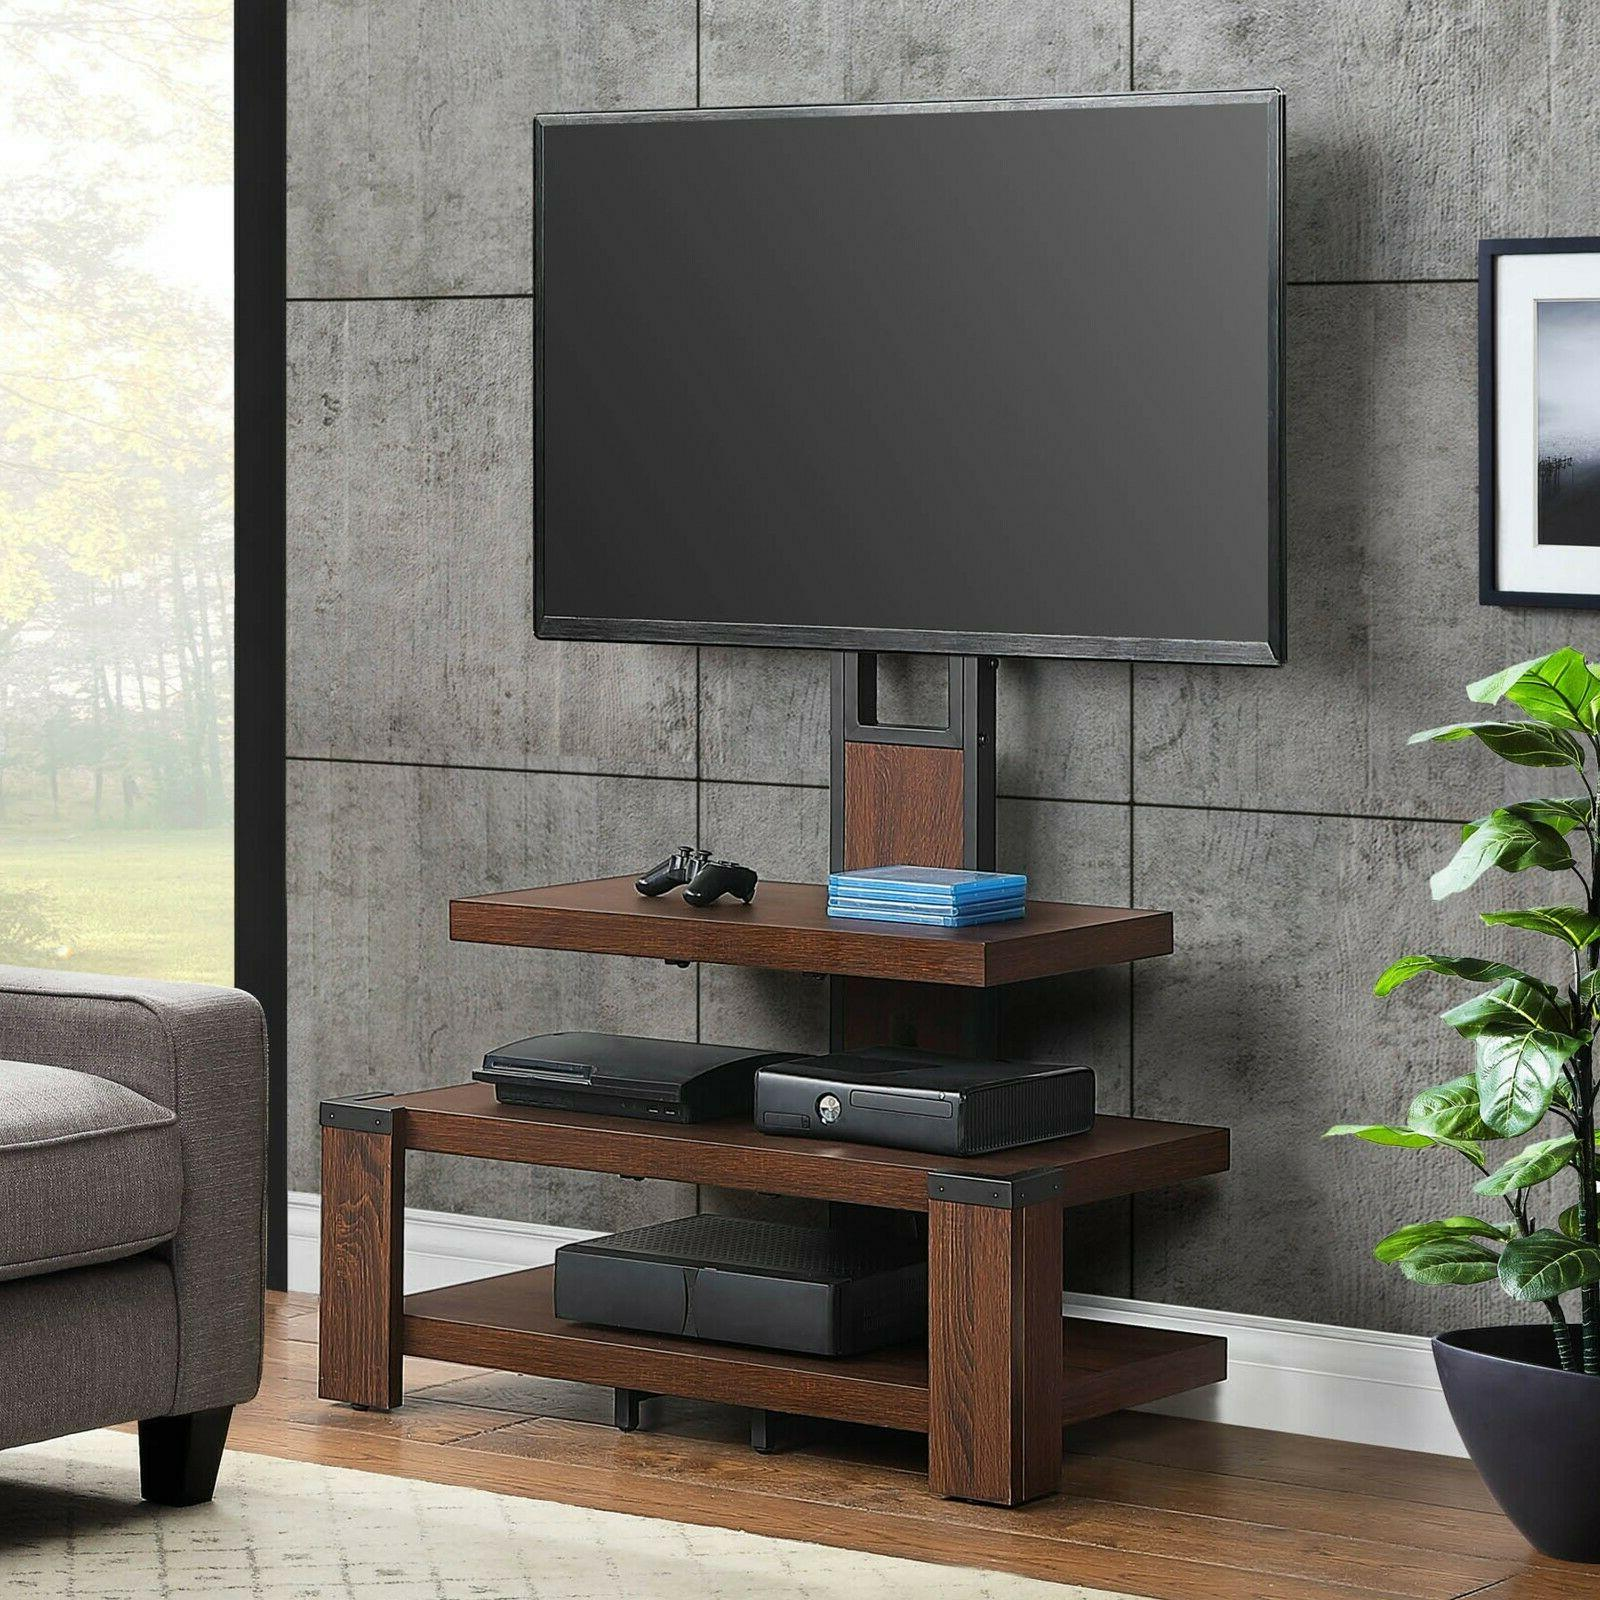 3 shelf television stand with floater mount